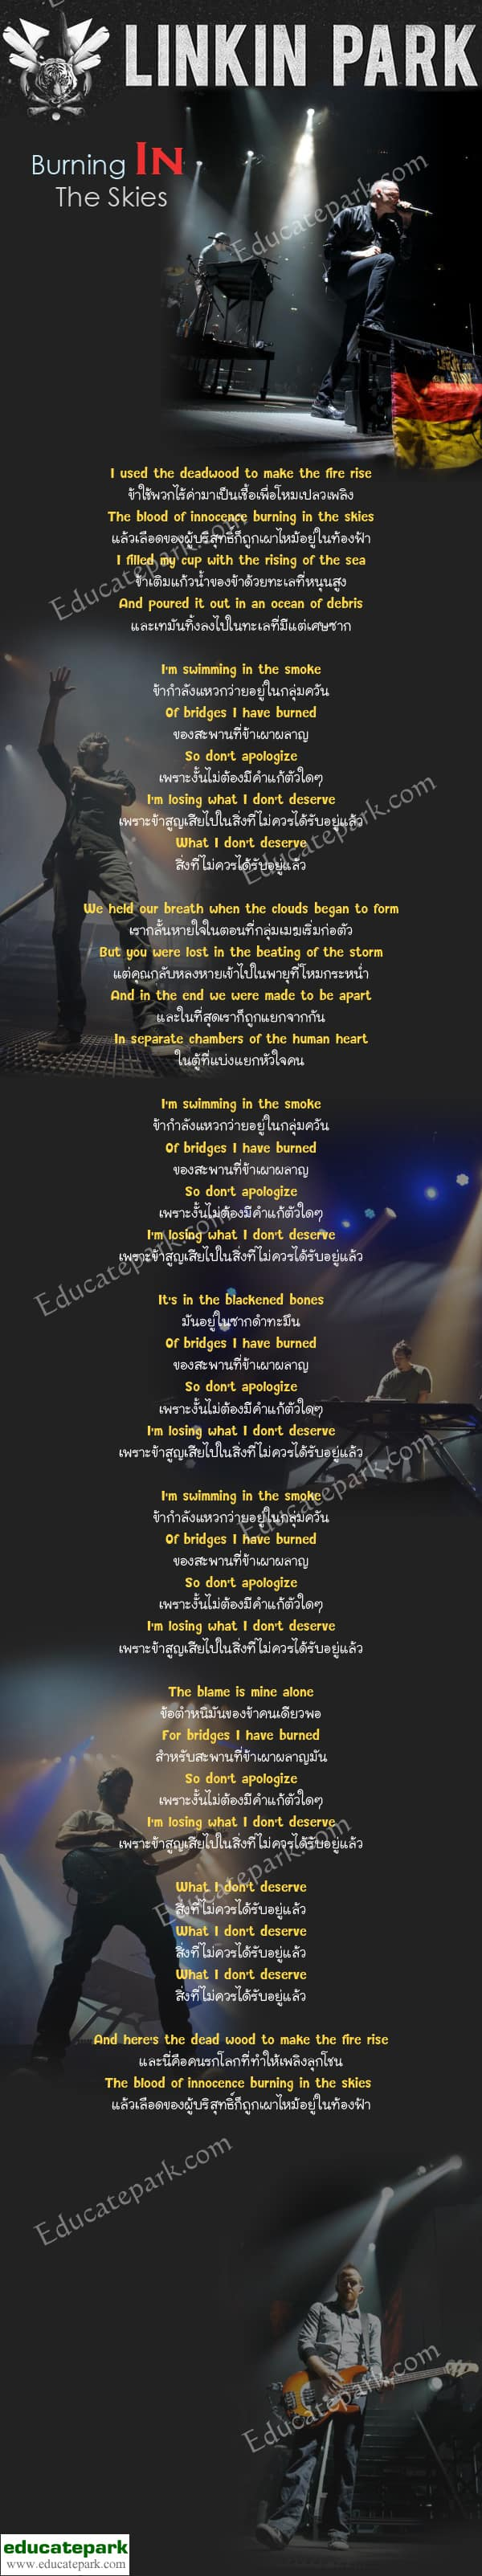 แปลเพลง Burning in The Skies - Linkin Park